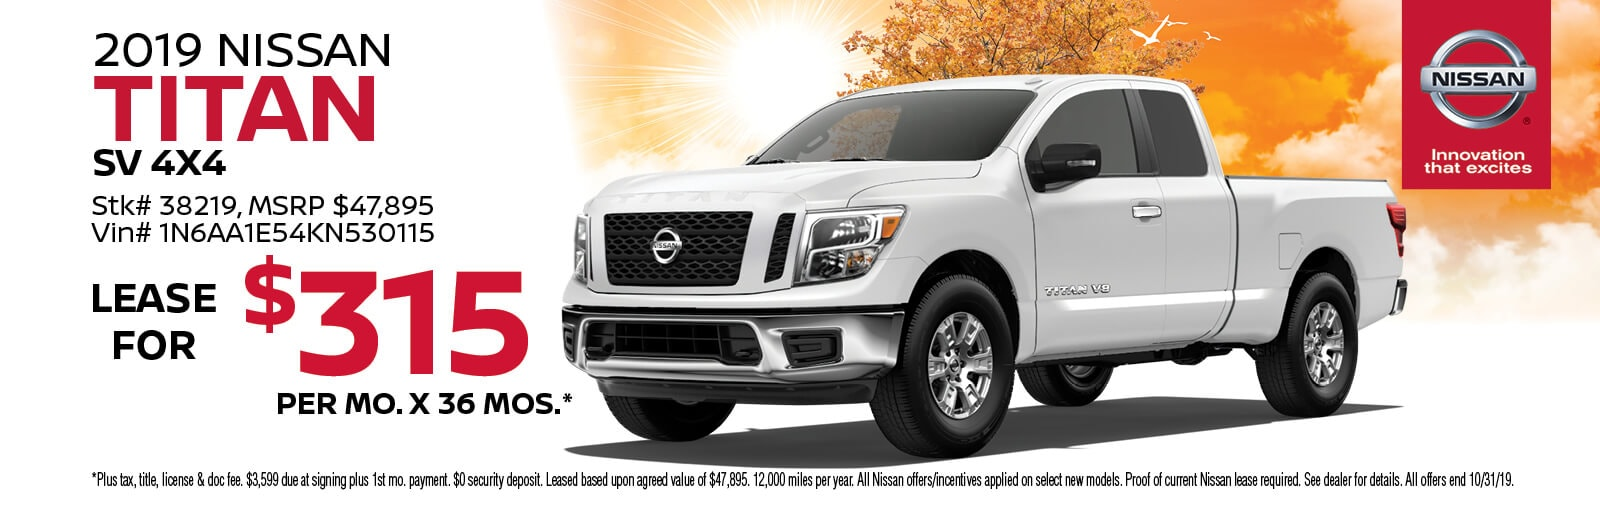 Lease a 2019 Nissan Titan SV for $315/mo. for 36 mos.